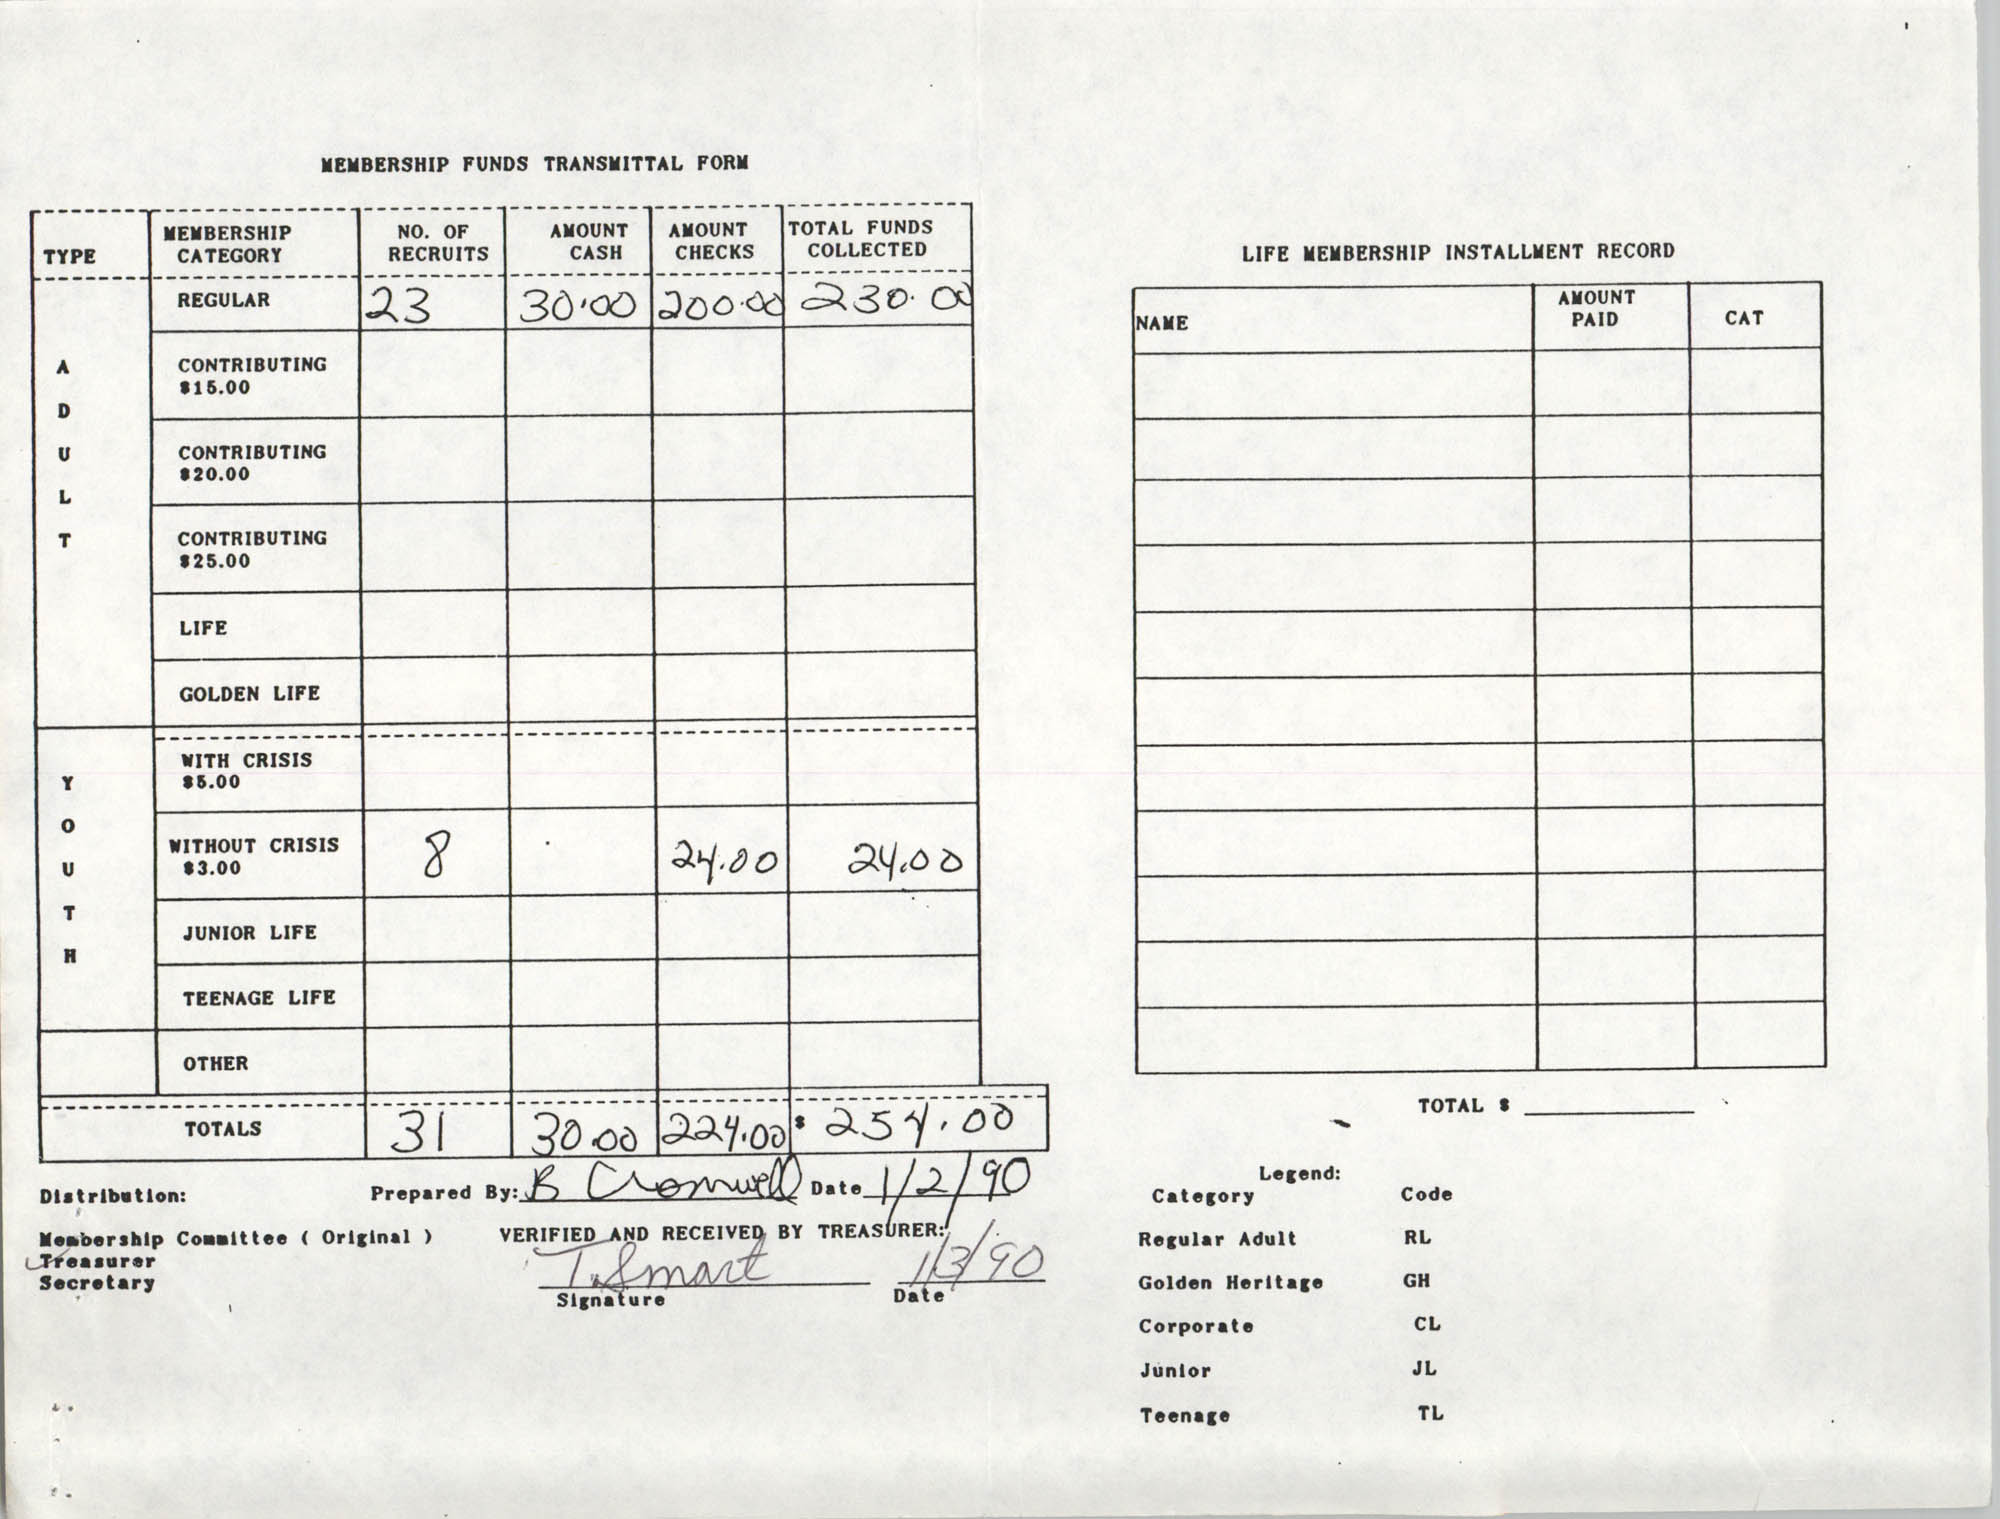 Charleston Branch of the NAACP, Membership Funds Transmittal Form, January 1990, Page 1